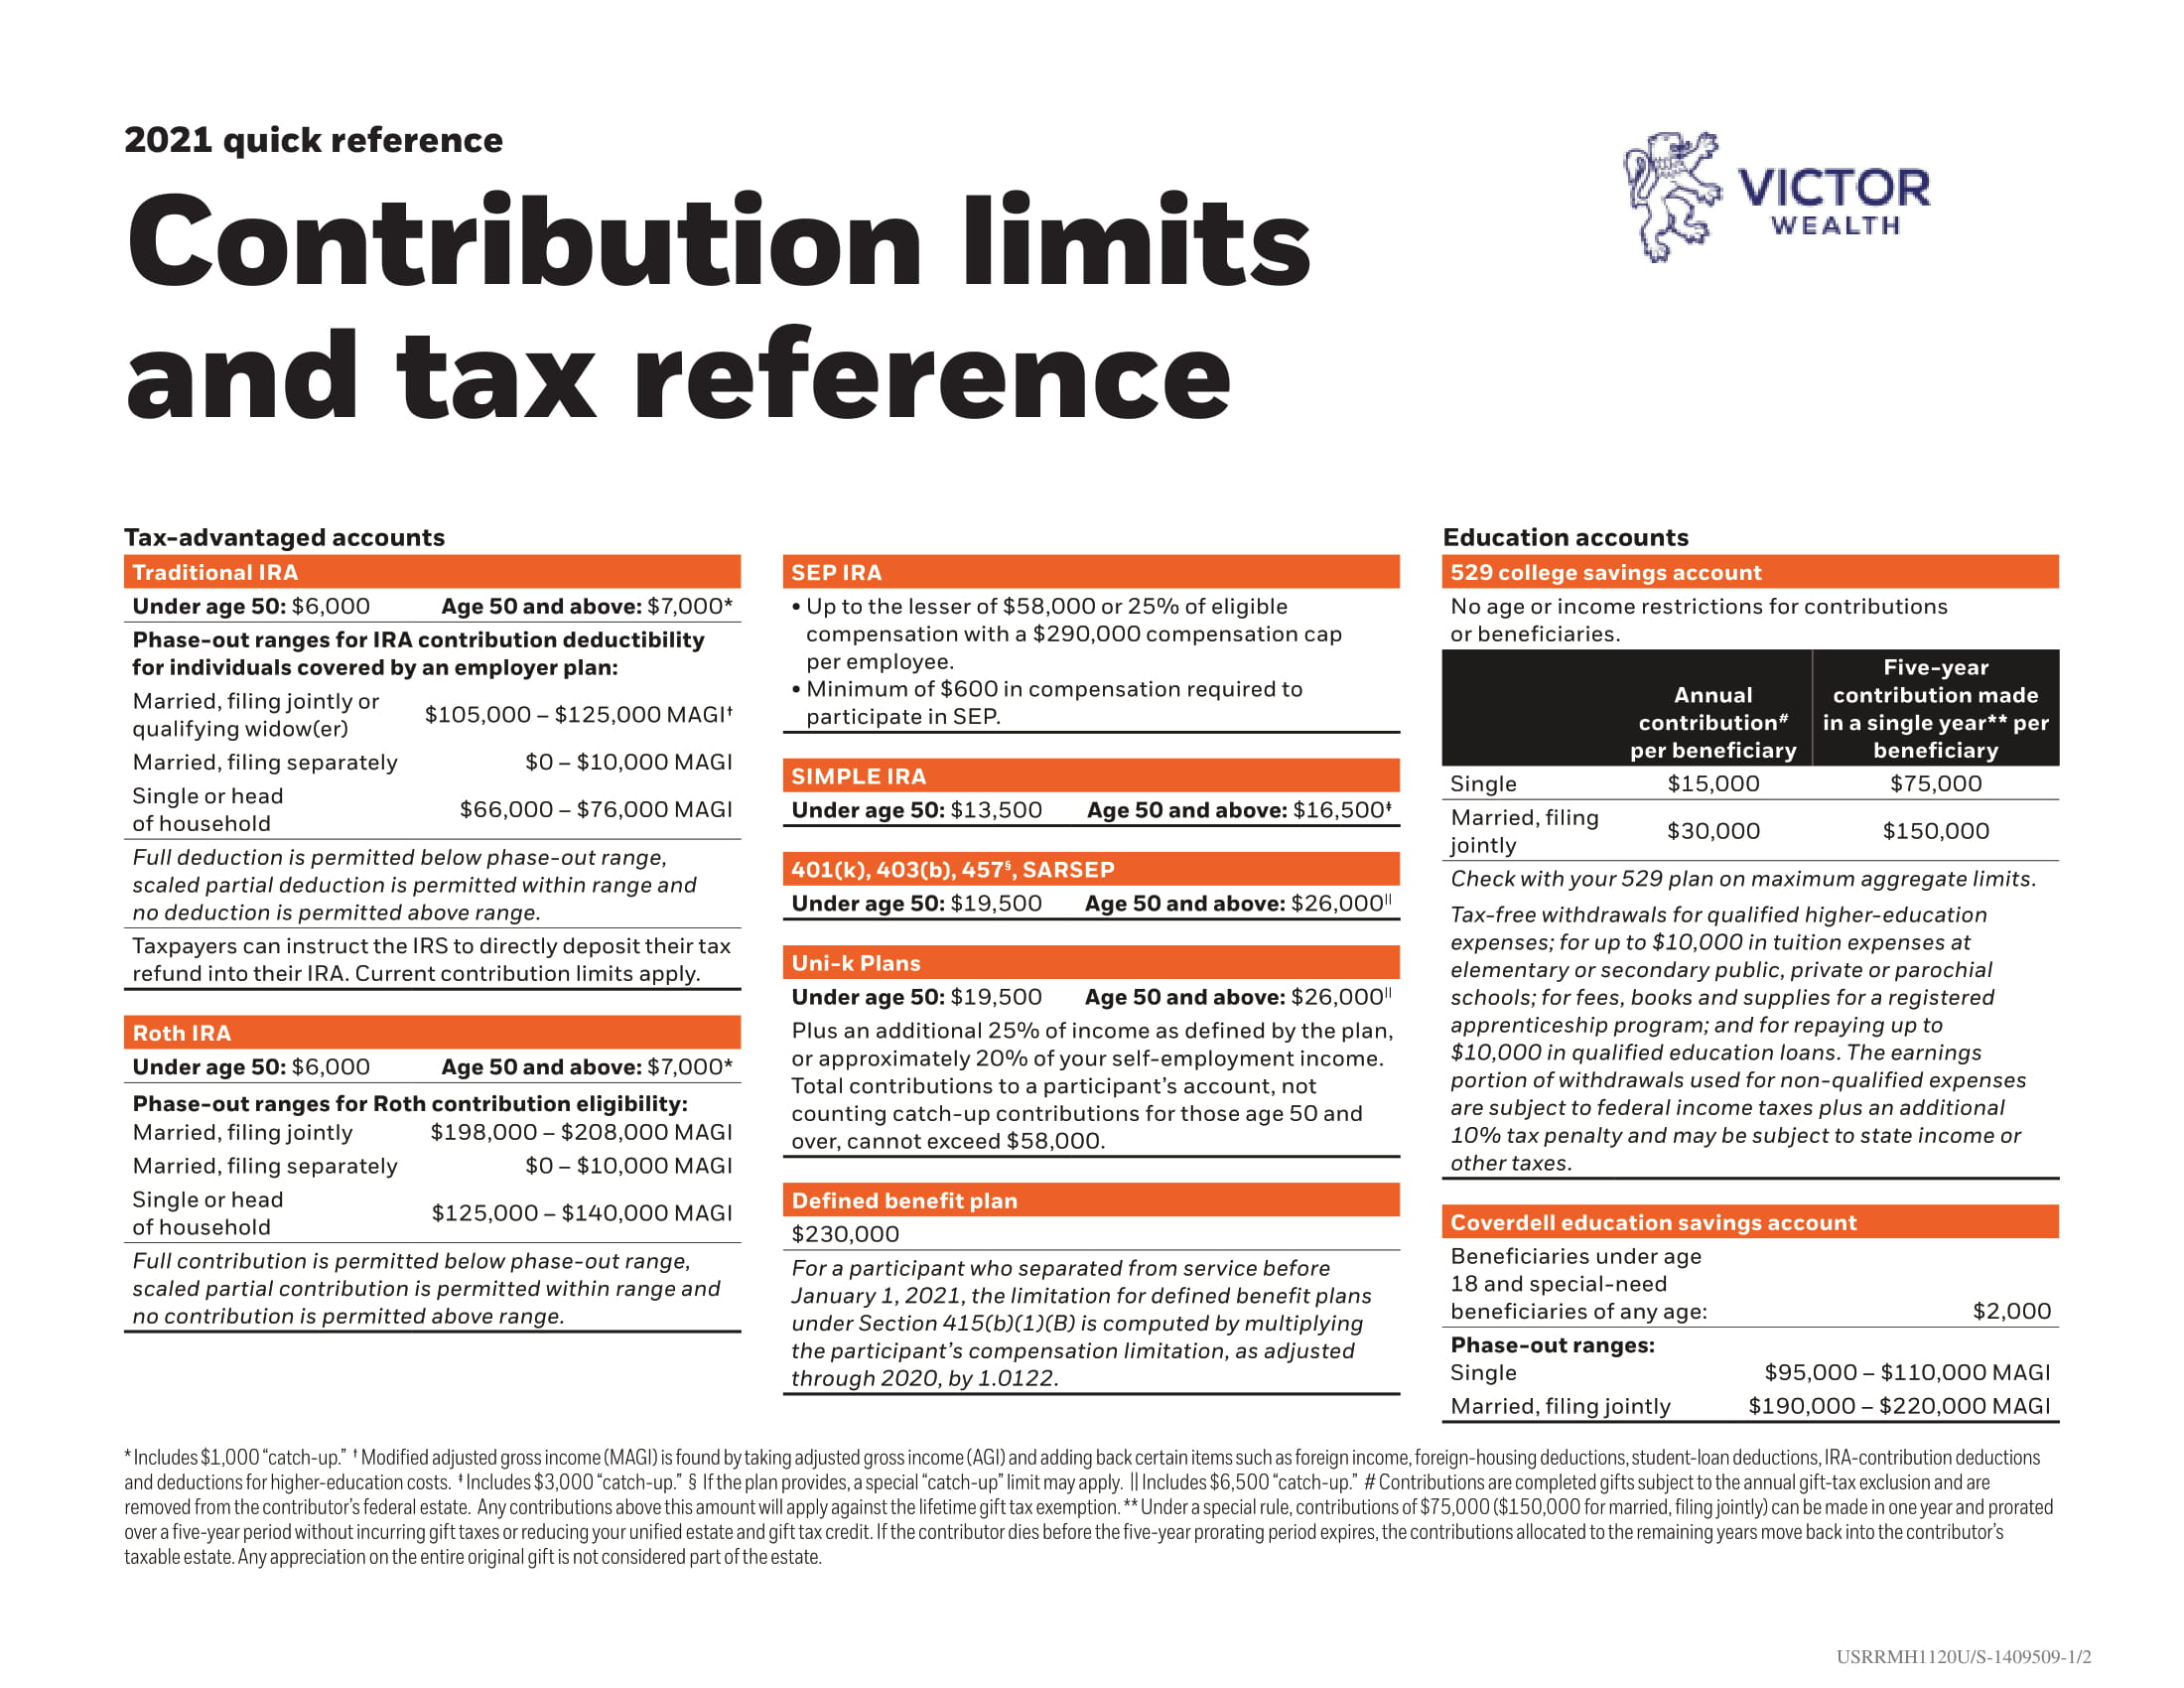 Contribution Limits and Tax Guide